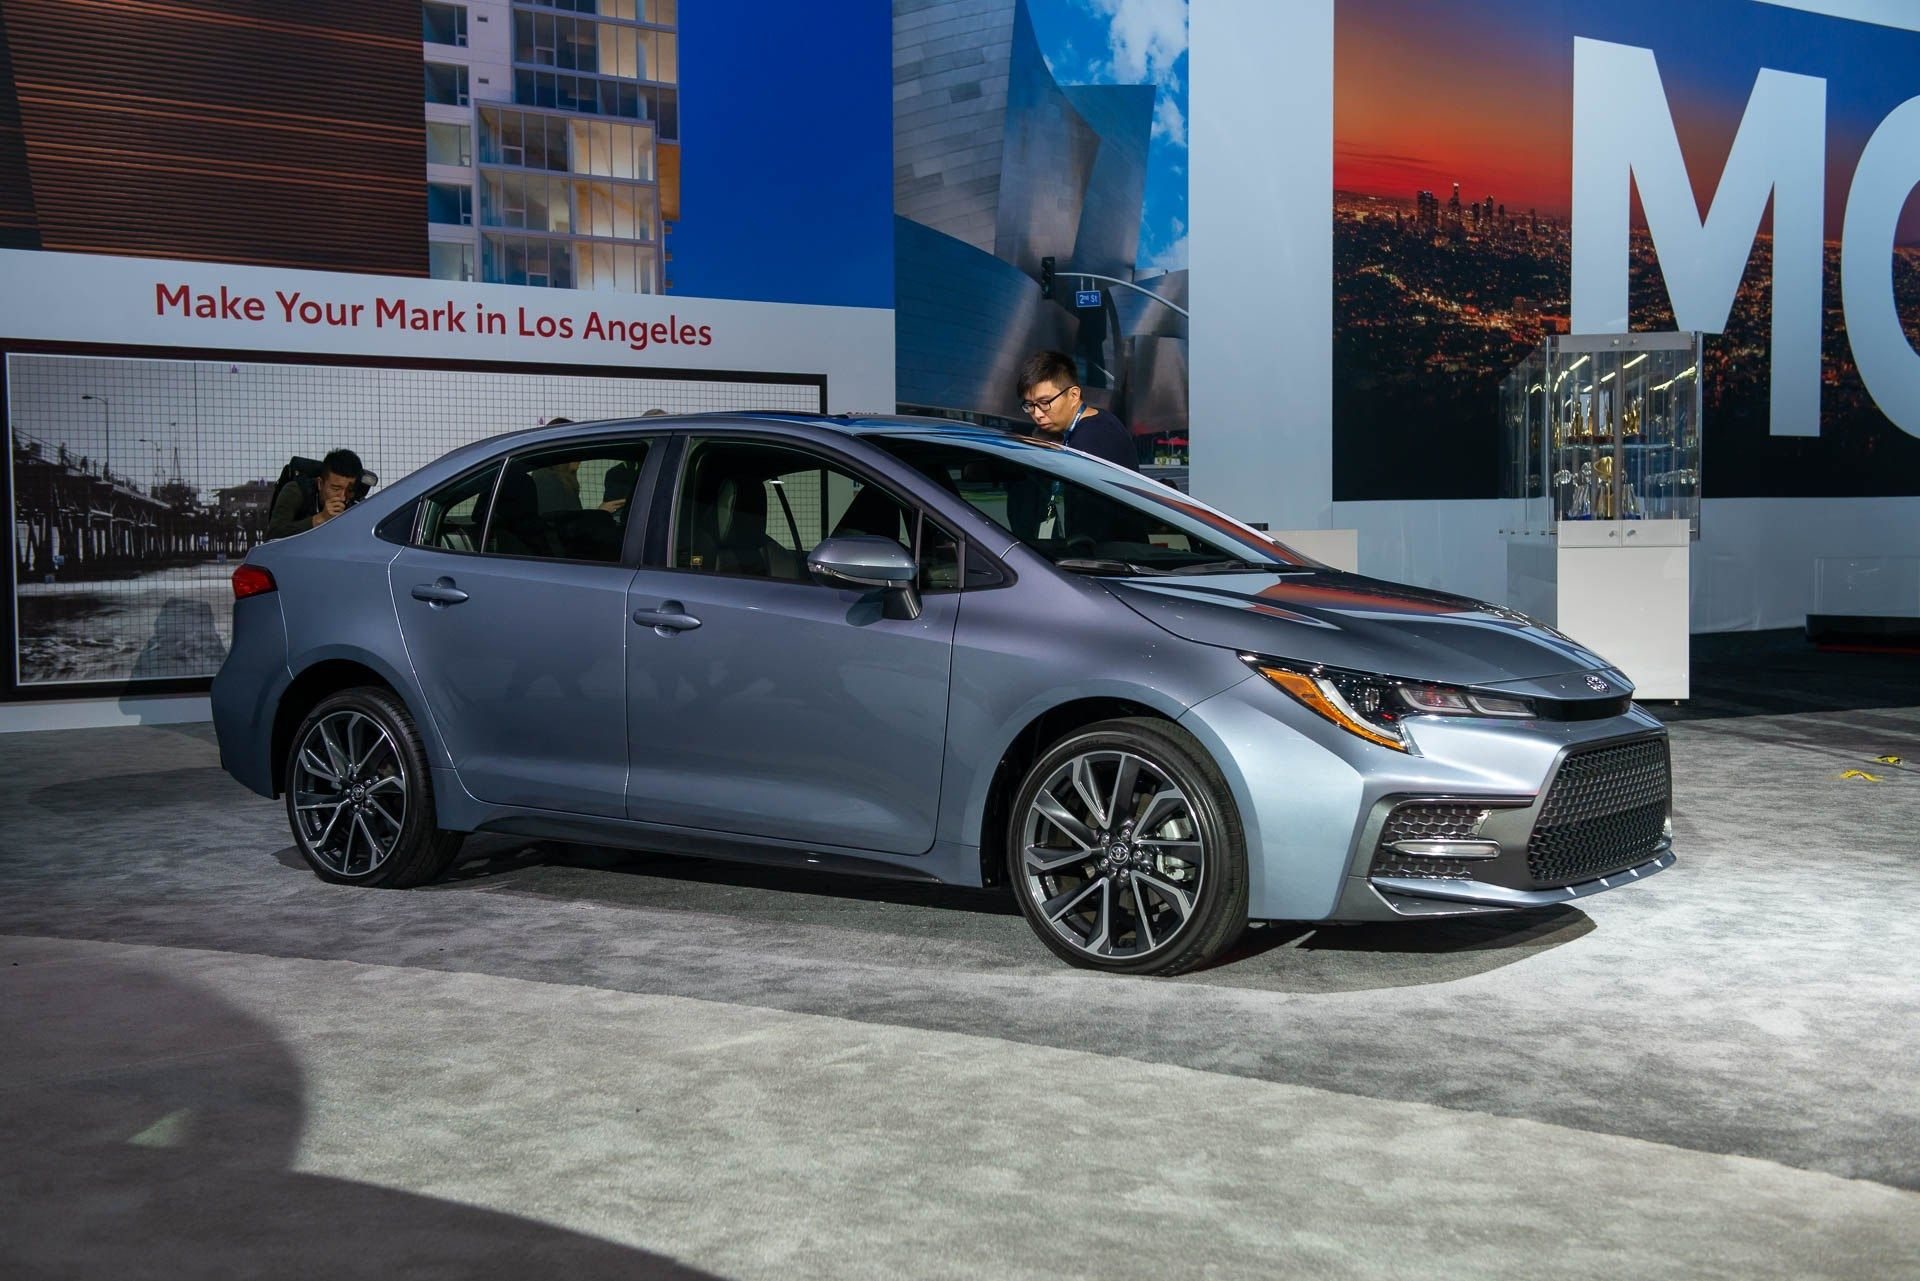 2020 Toyota Corolla Hybrid 50 Mpg Hybrid Tech For A New Interior Exterior And Review Toyota Corolla Corolla Toyota